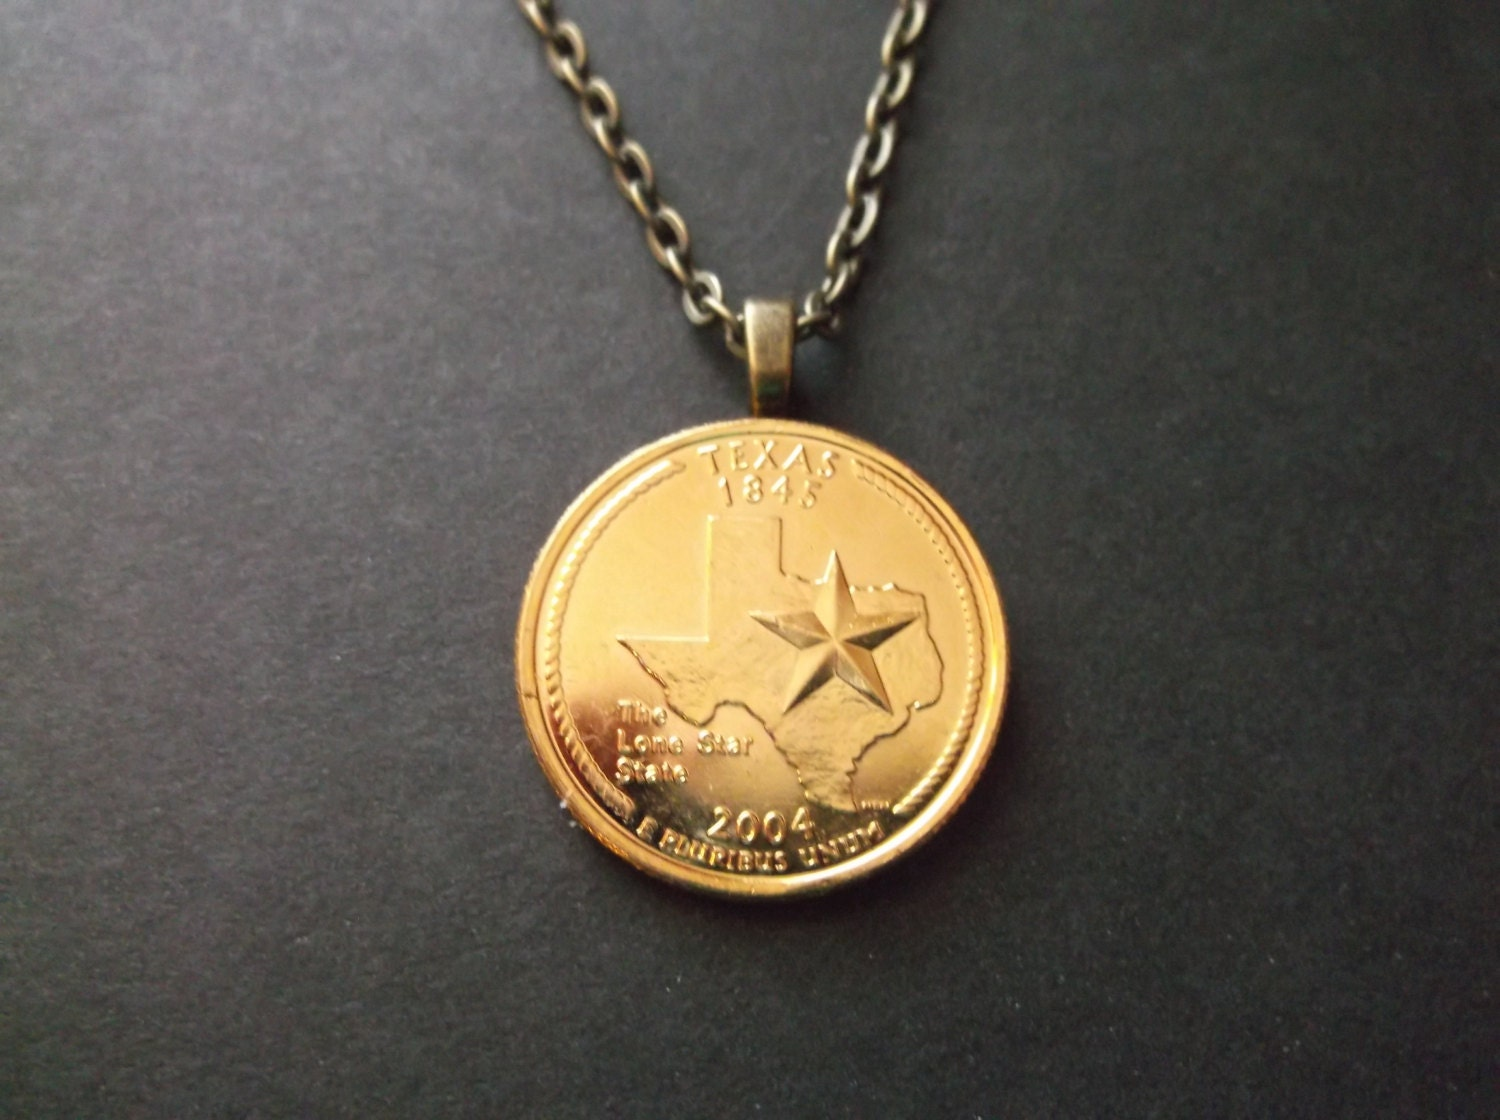 Texas United States Gold Colored Quarter Coin Necklace by ...